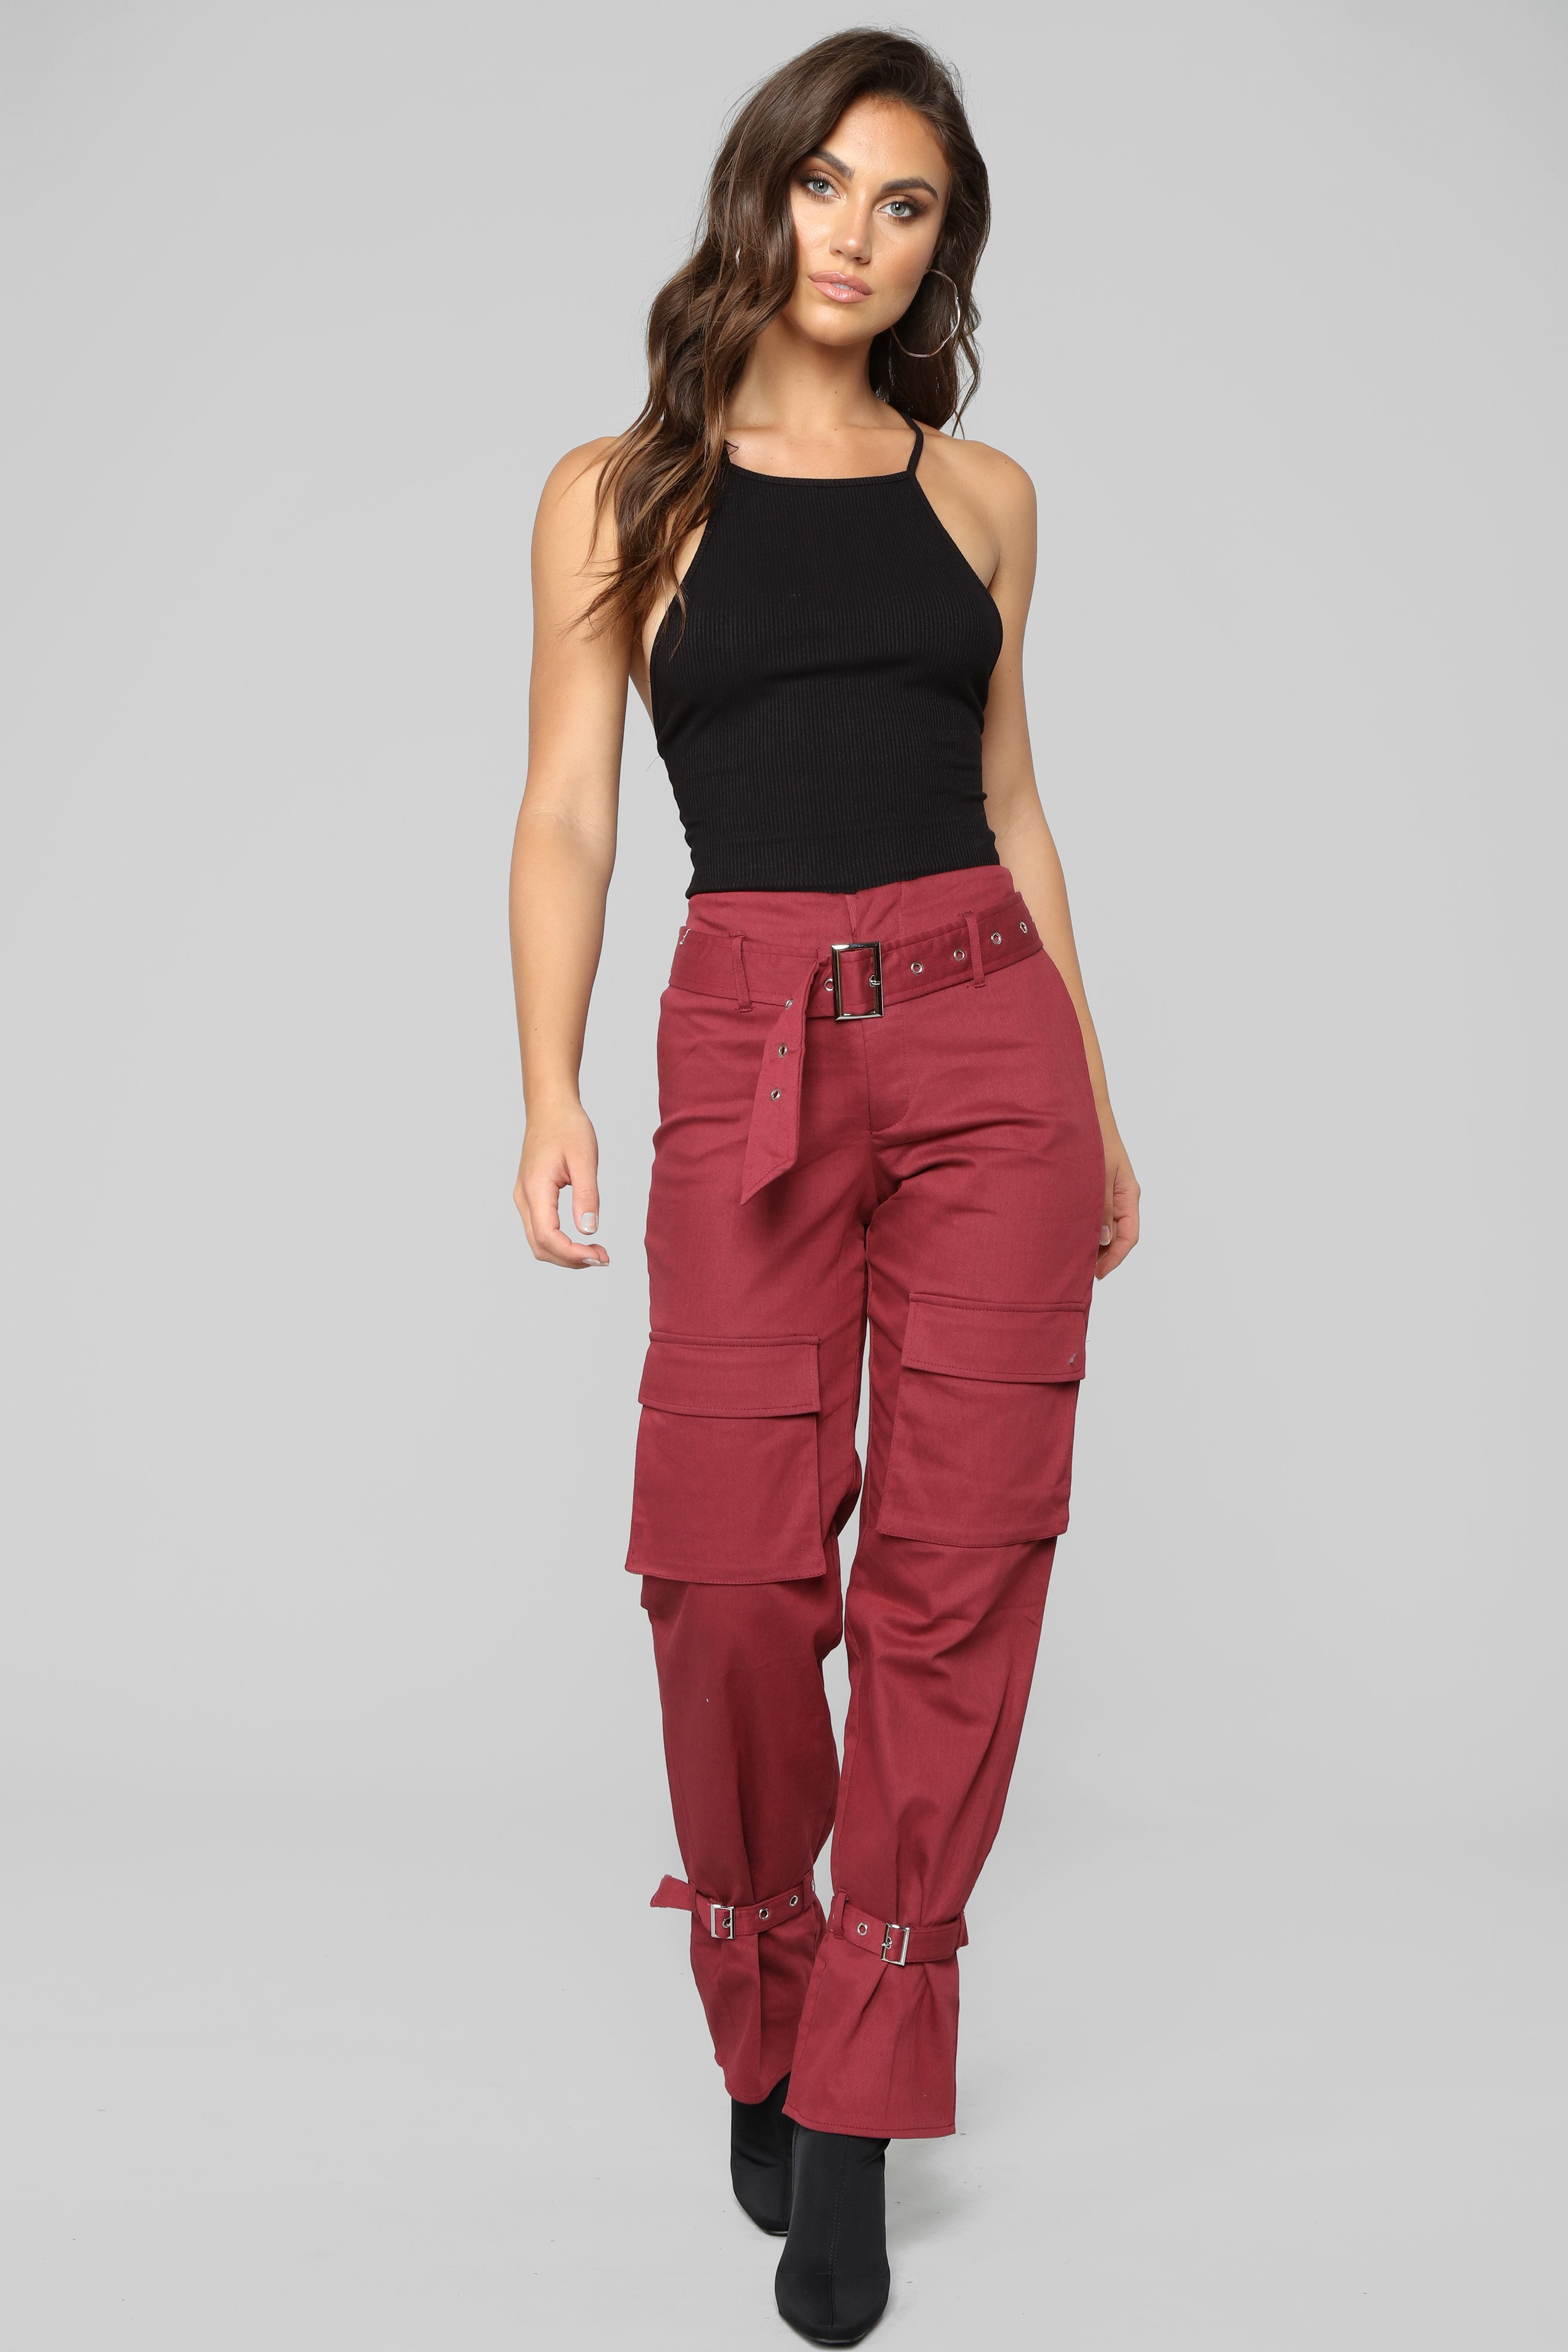 We Are So Over Cargo Pants - Burgundy